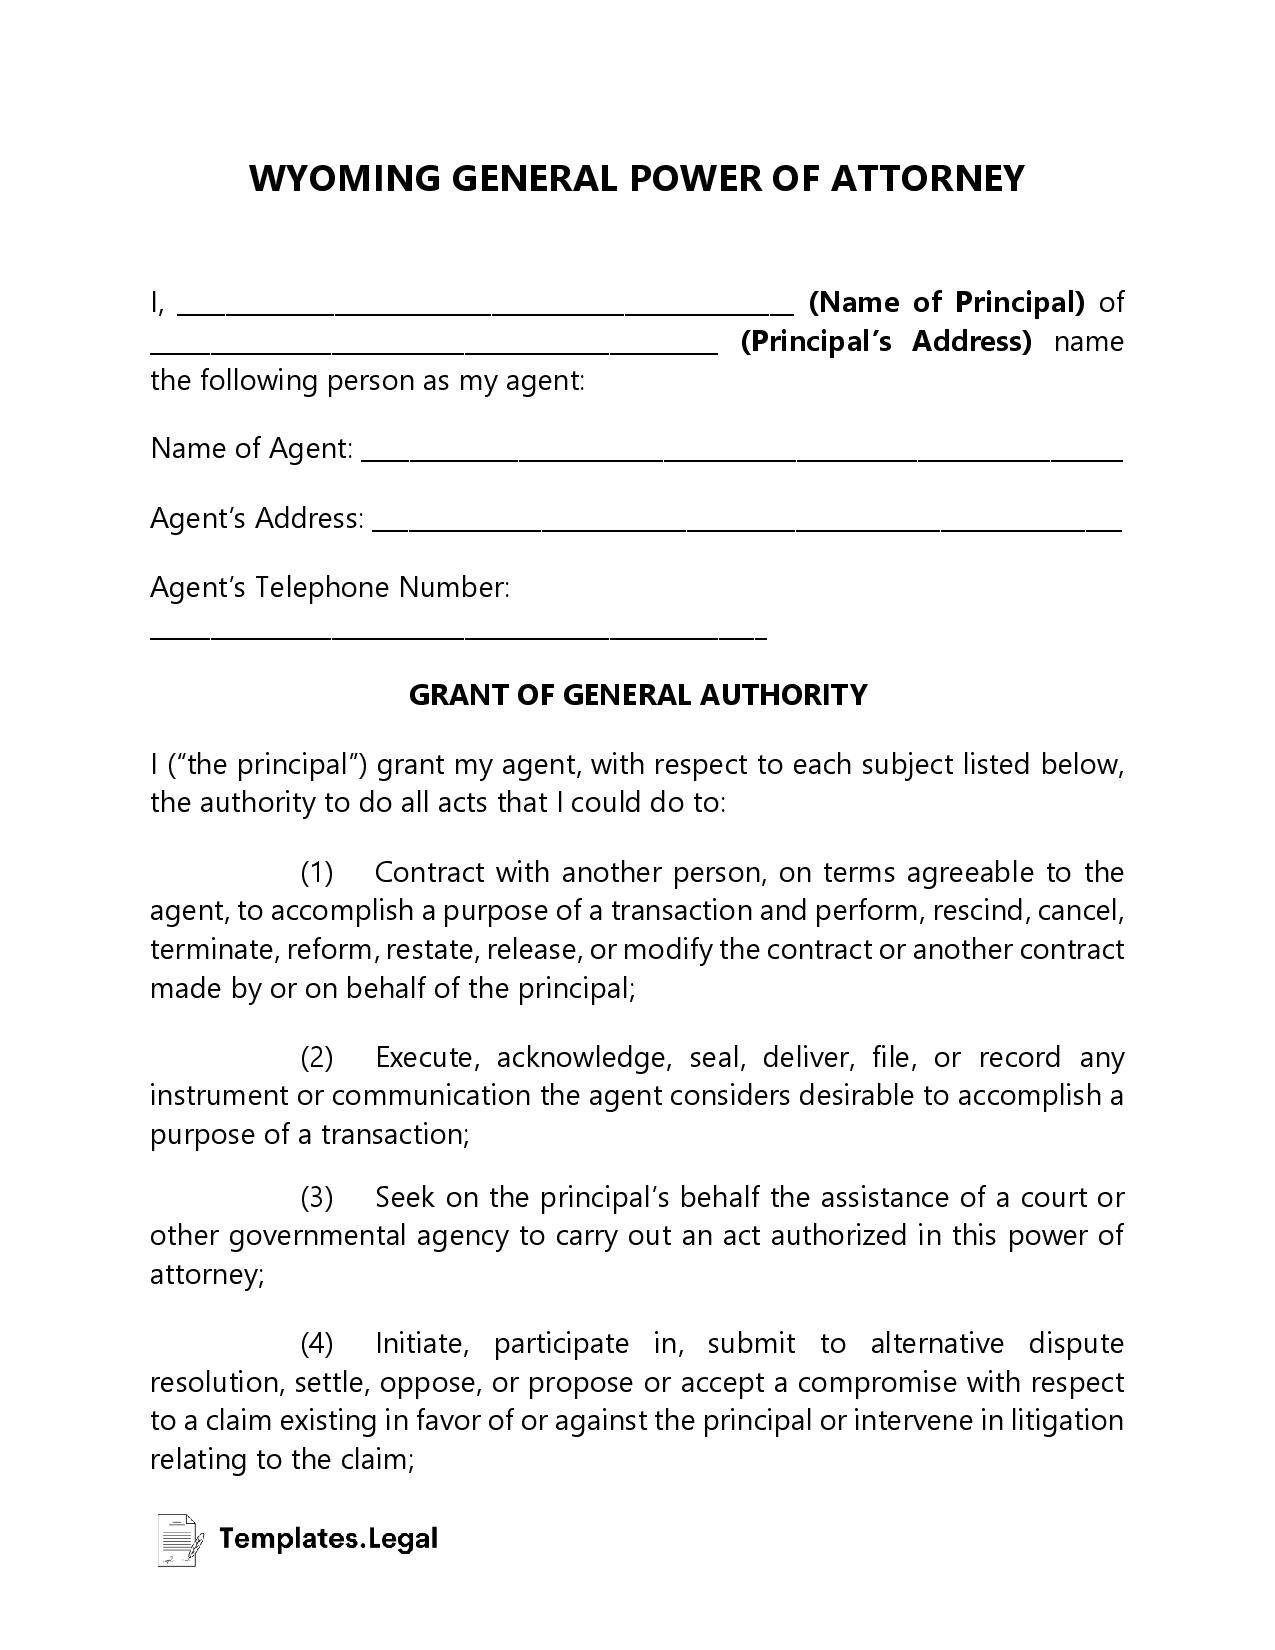 Wyoming General Power of Attorney - Templates.Legal